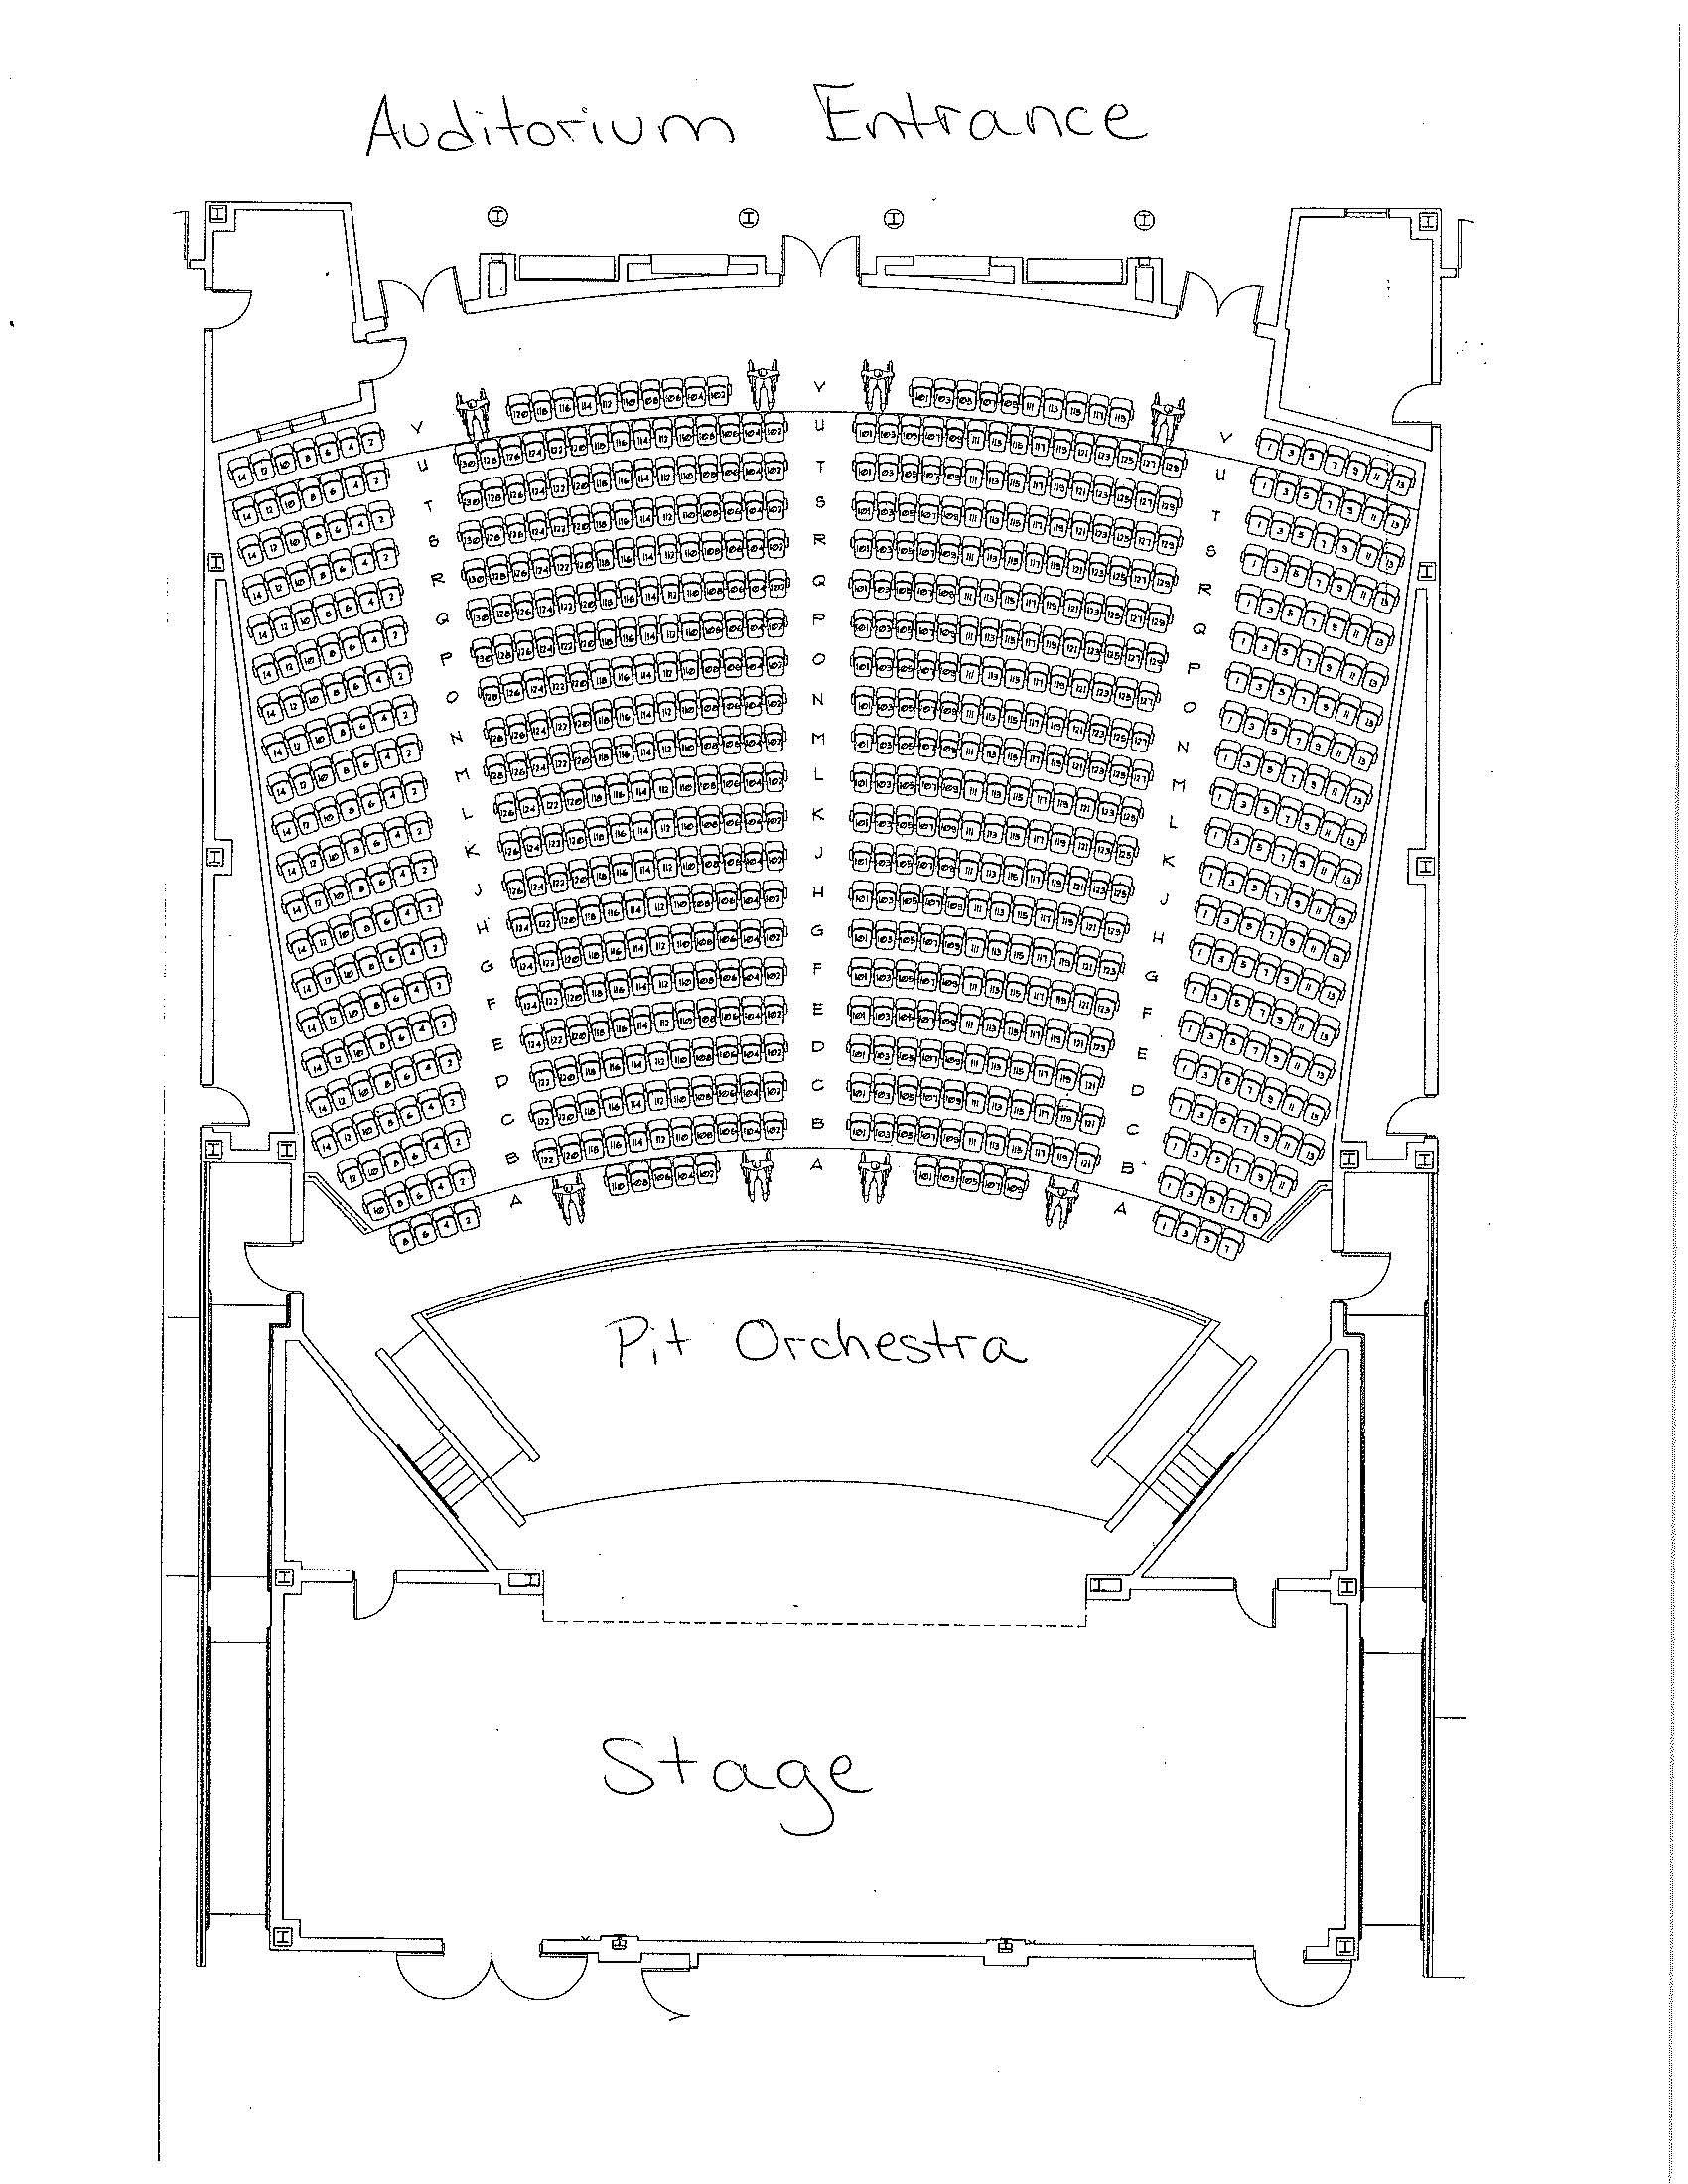 High School Auditorium Map